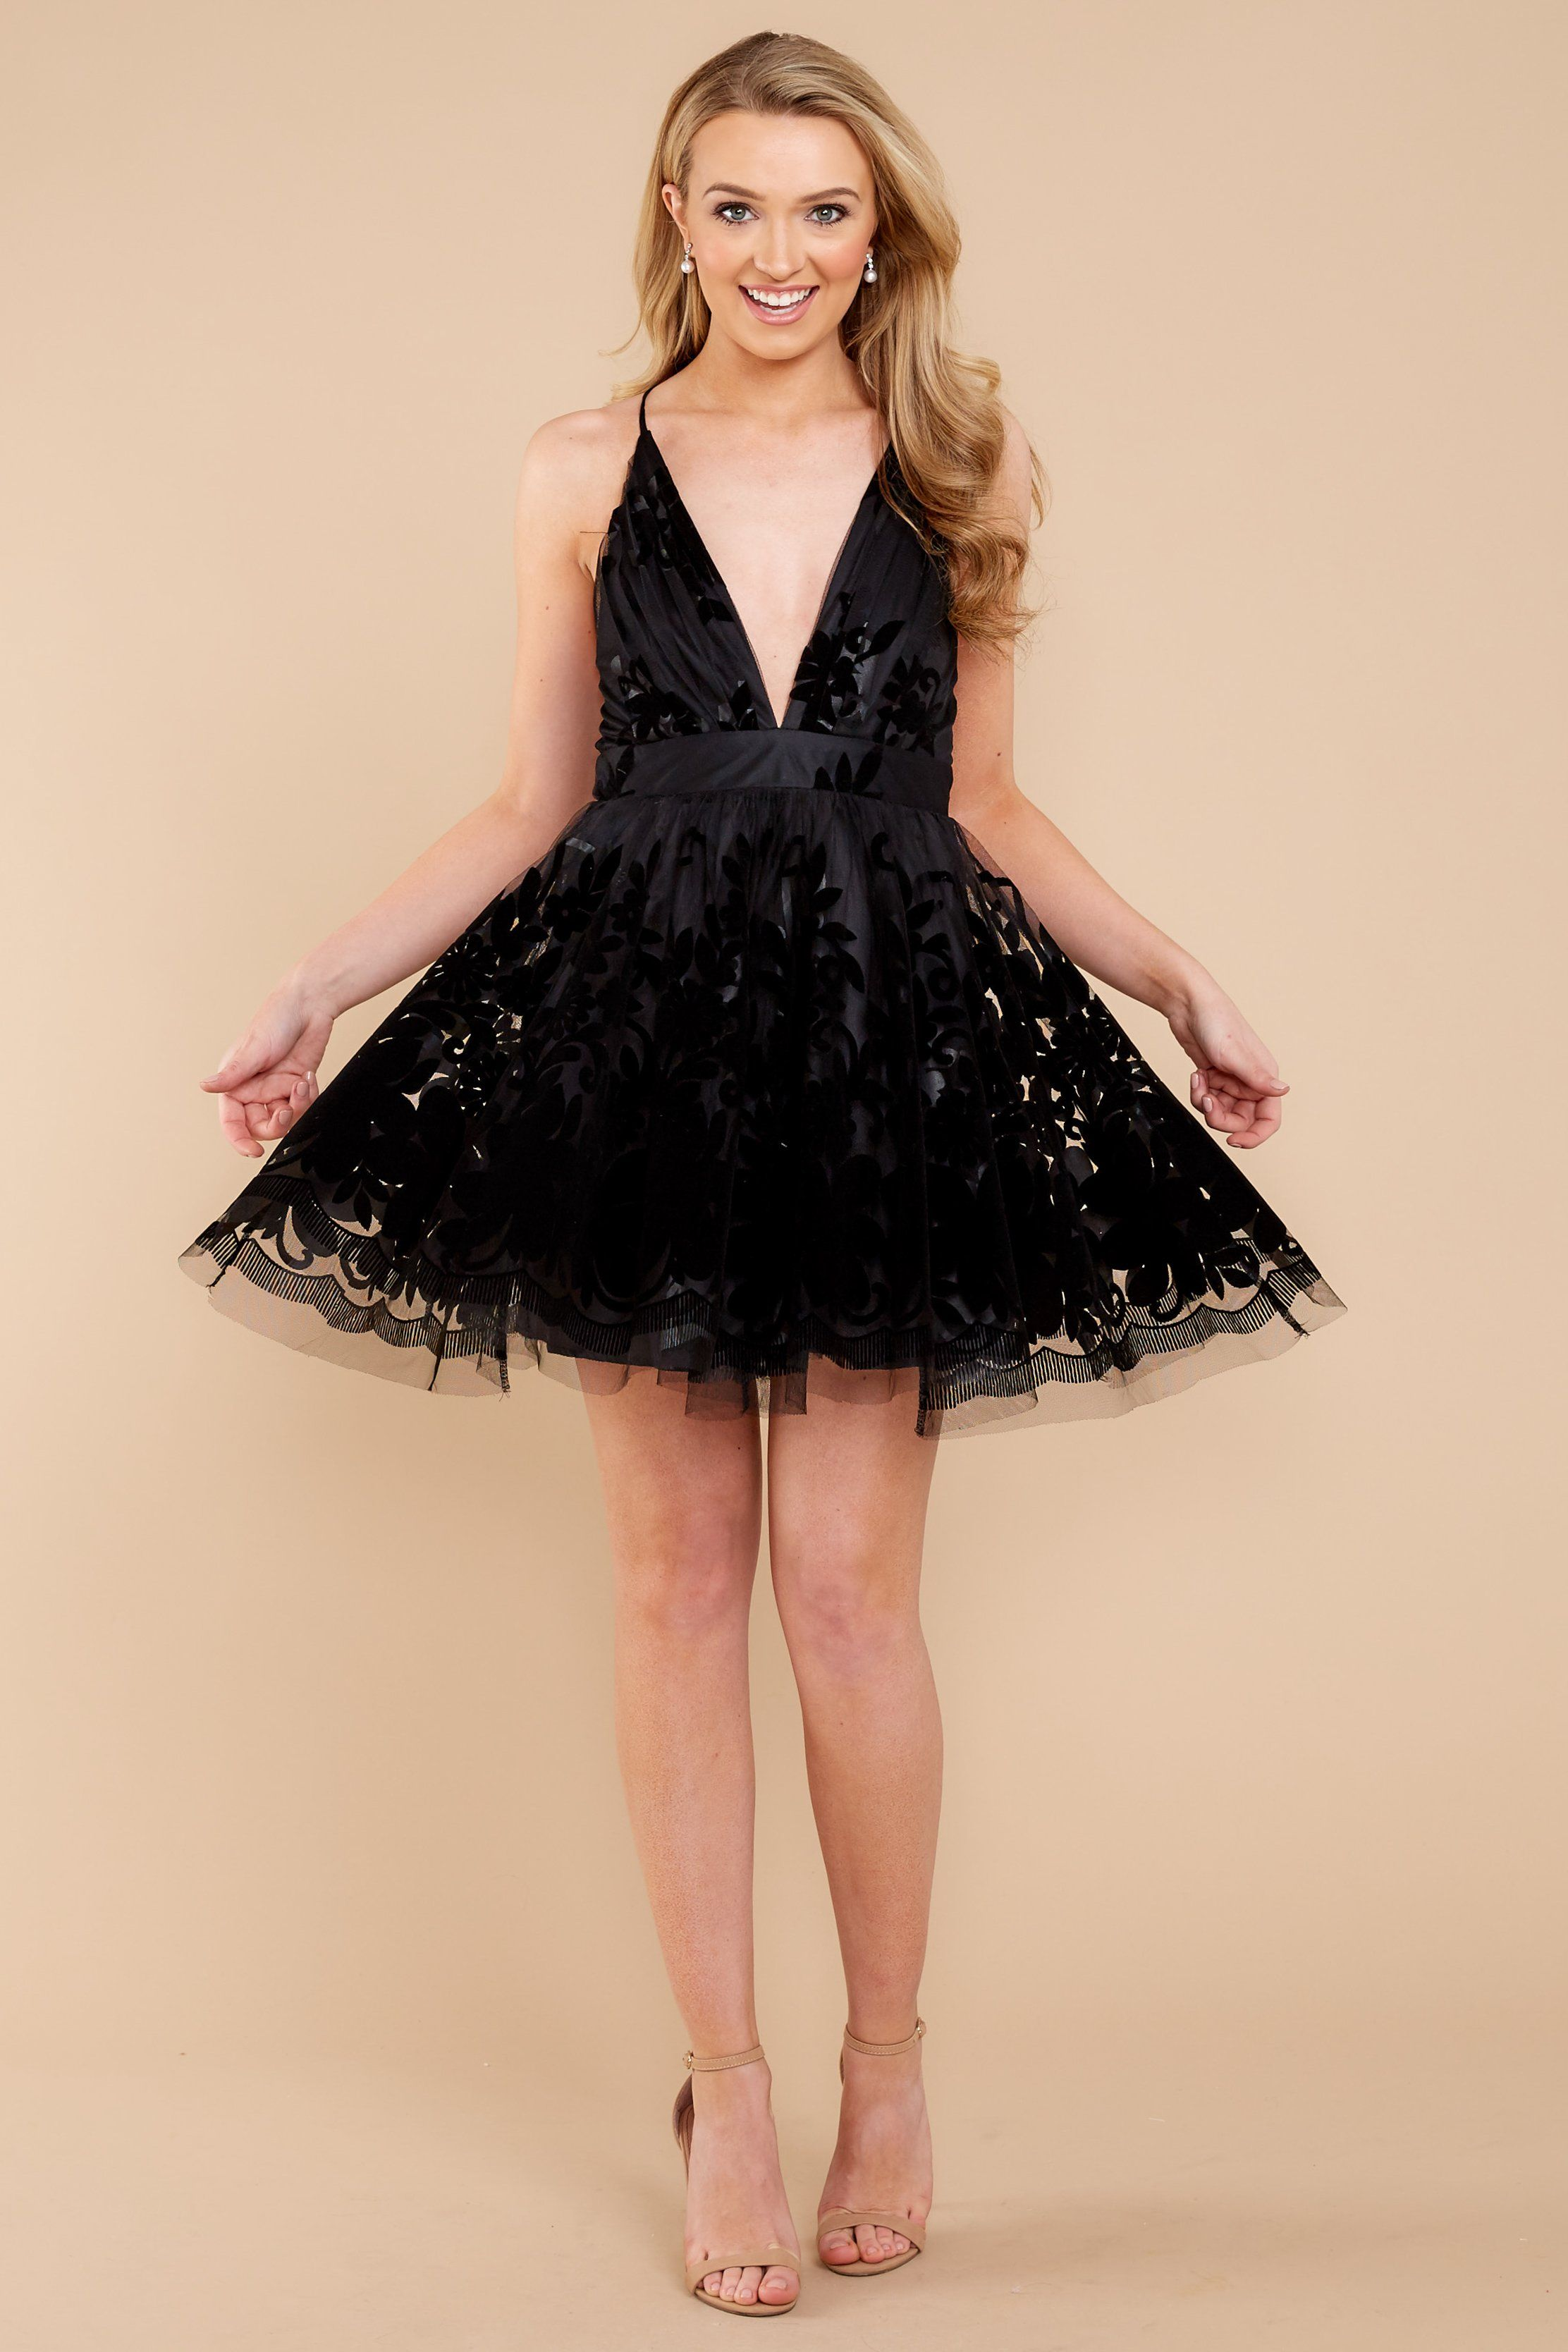 Best Thing I Never Had Black Dress With Images Dresses Black